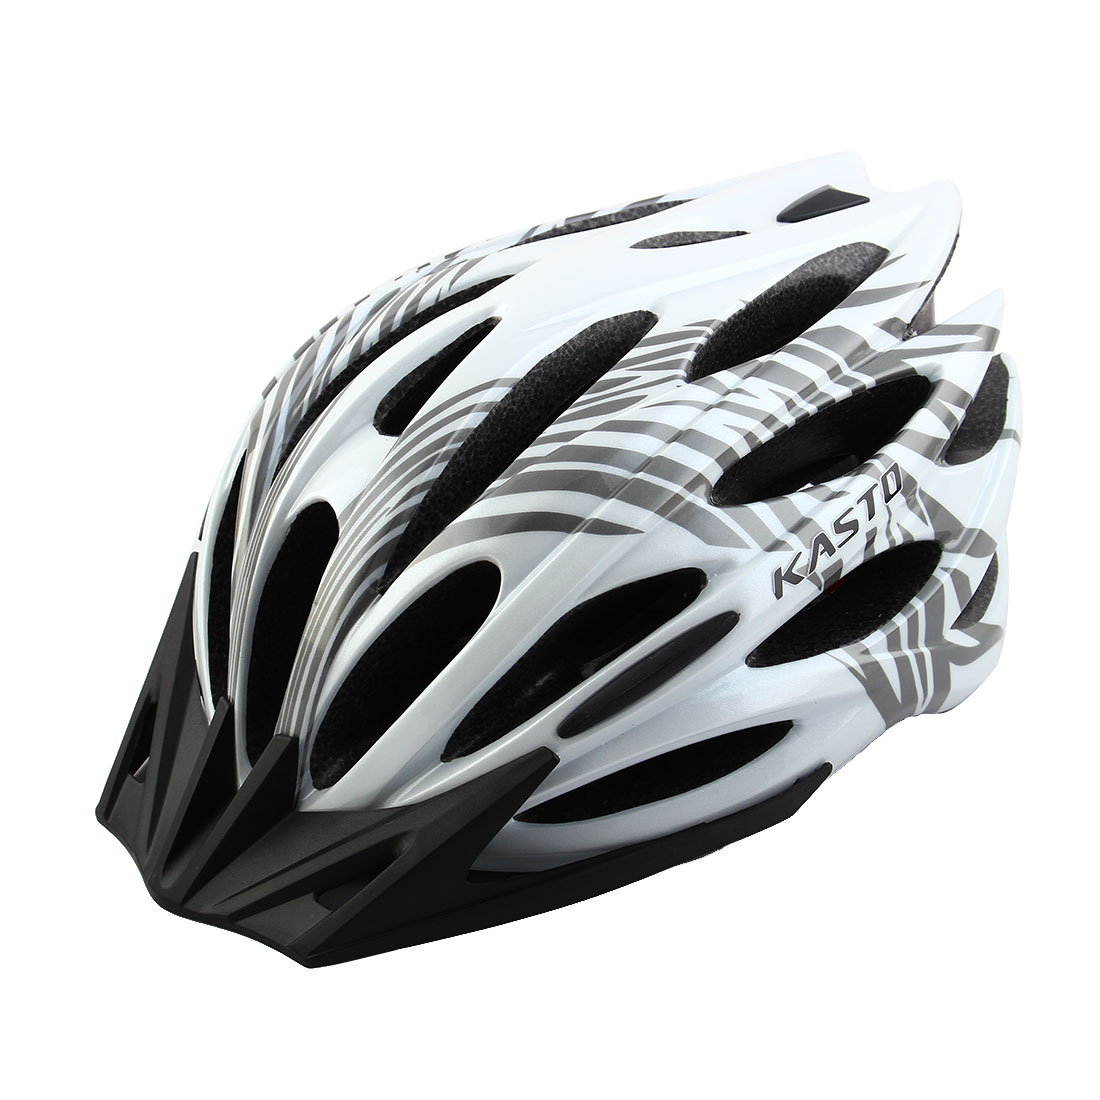 Adult Unisex 25 Holes Rotary Regulator Cycling Cap Head Protector Hat Portable Biking Helmet White Gray